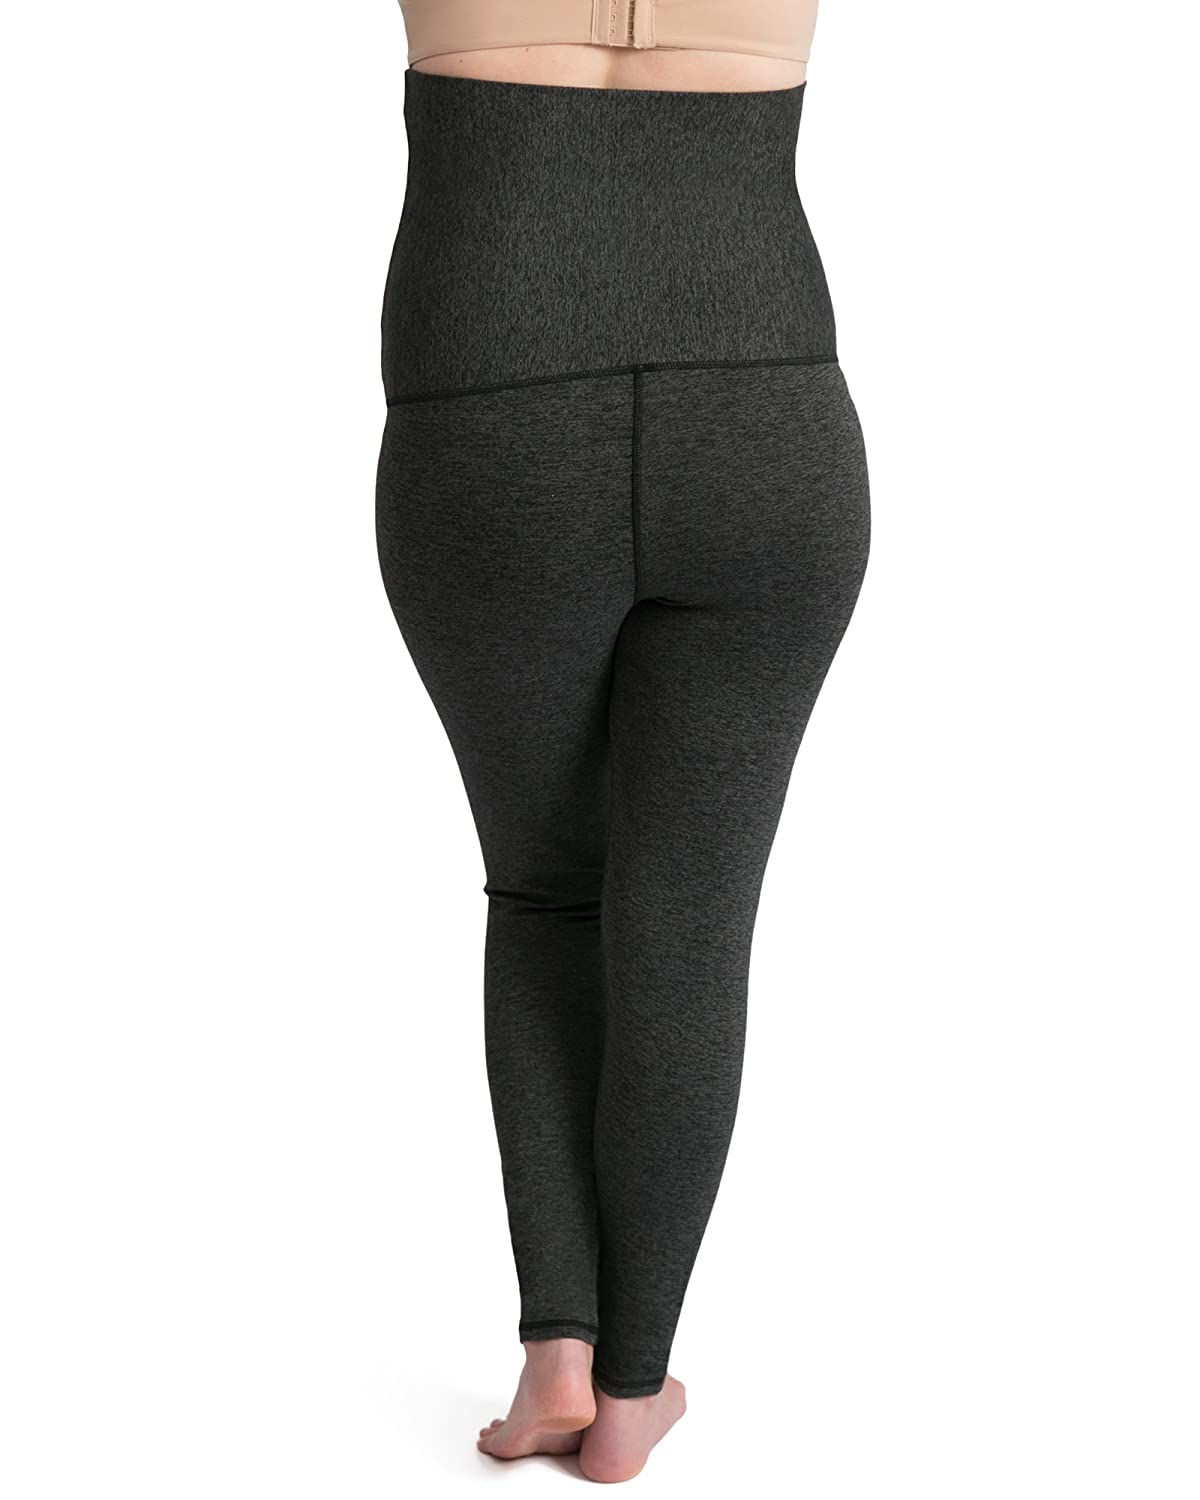 d6ab63b1efe26 Kindred Bravely The Louisa Ultra High-Waisted Over the Bump Maternity/Pregnancy  Leggings at Amazon Women's Clothing store: